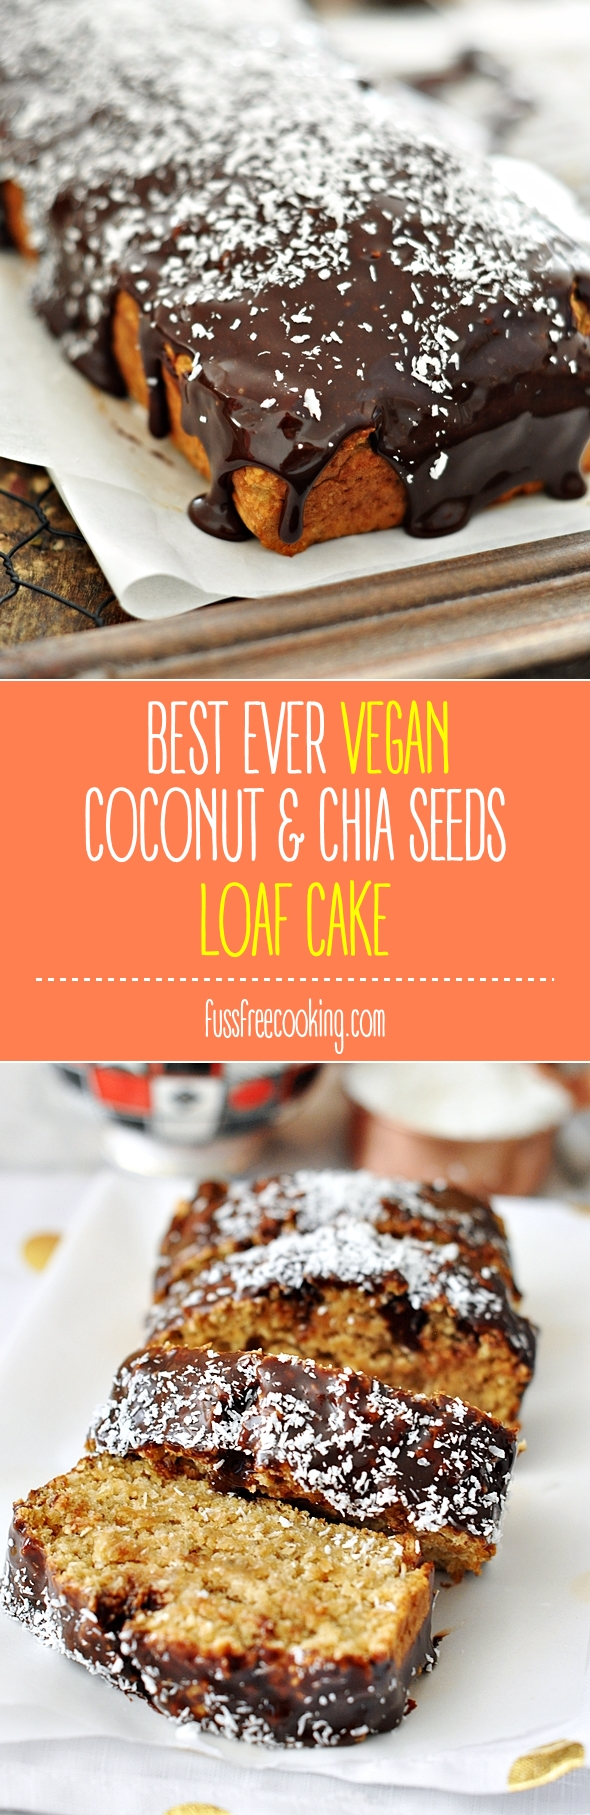 Vegan Sweet Coconut & Chia Seeds Loaf Cake | fussfreecooking.com